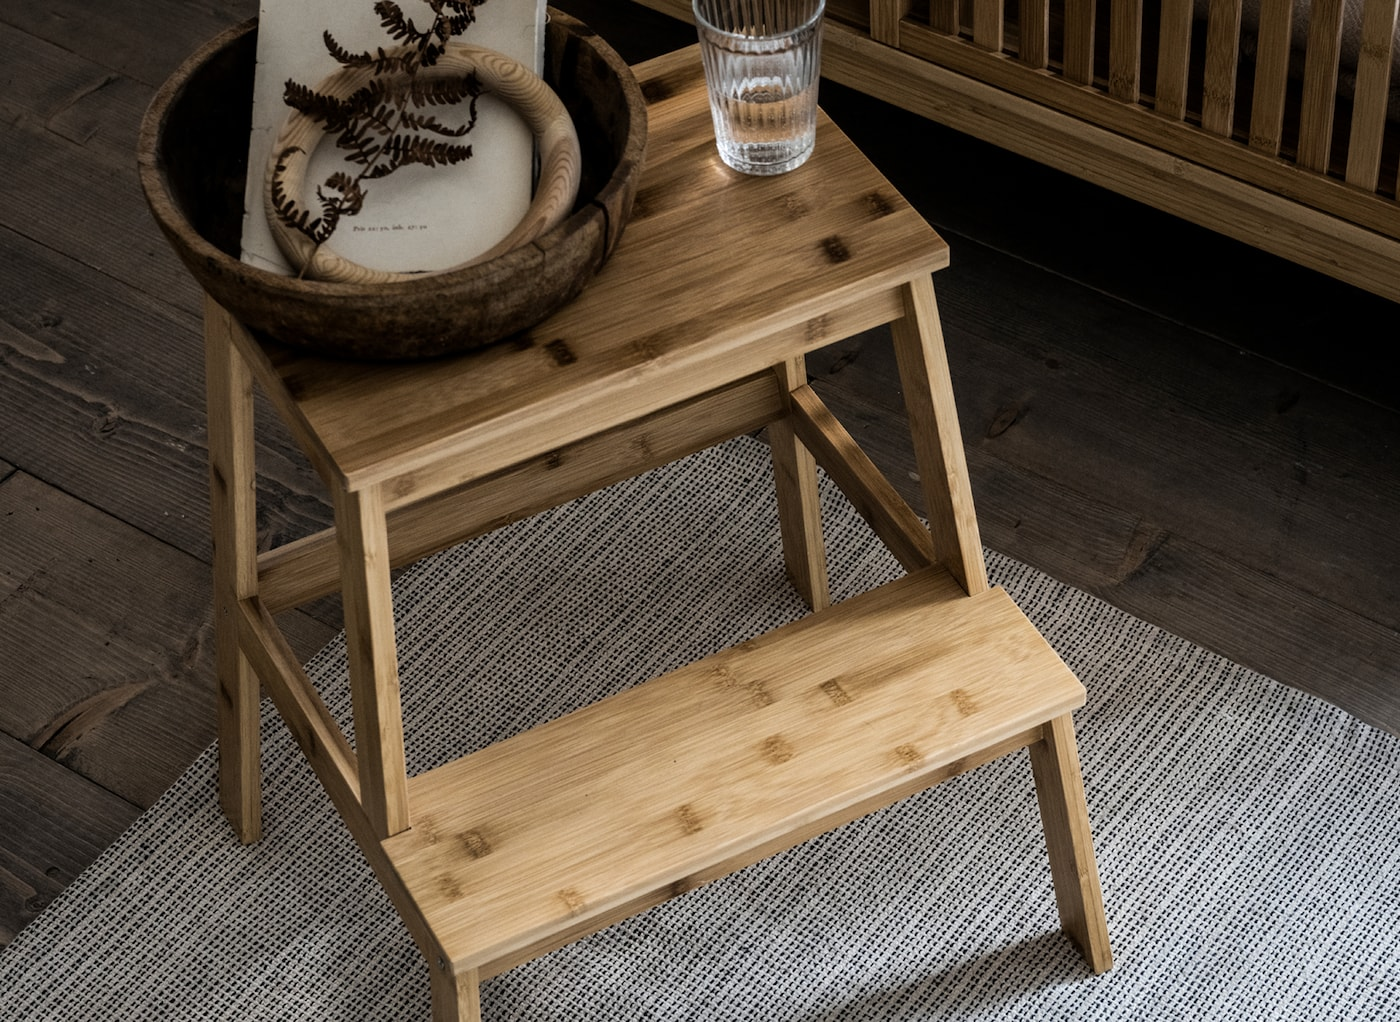 A wooden bowl and a clear drinking glass are placed on top of an IKEA TENHULT step stool that is made from bamboo.